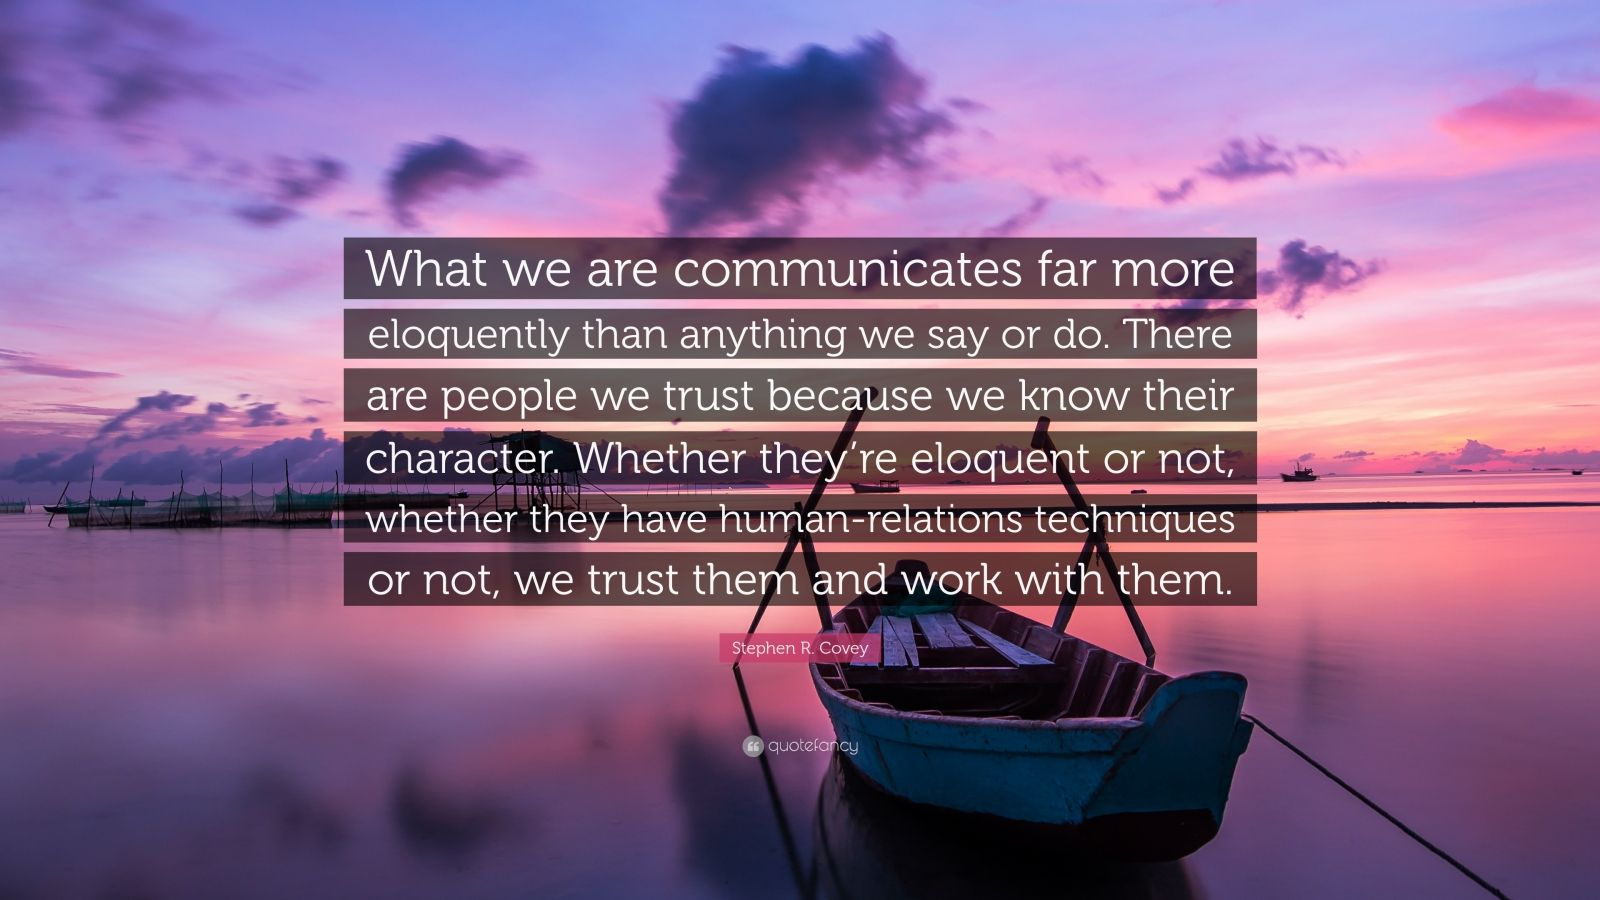 "Stephen R. Covey Quote: ""What we are communicates far more eloquently than anything we say or do. There are people we trust because we know their character. Whether they're eloquent or not, whether they have human-relations techniques or not, we trust them and work with them."""